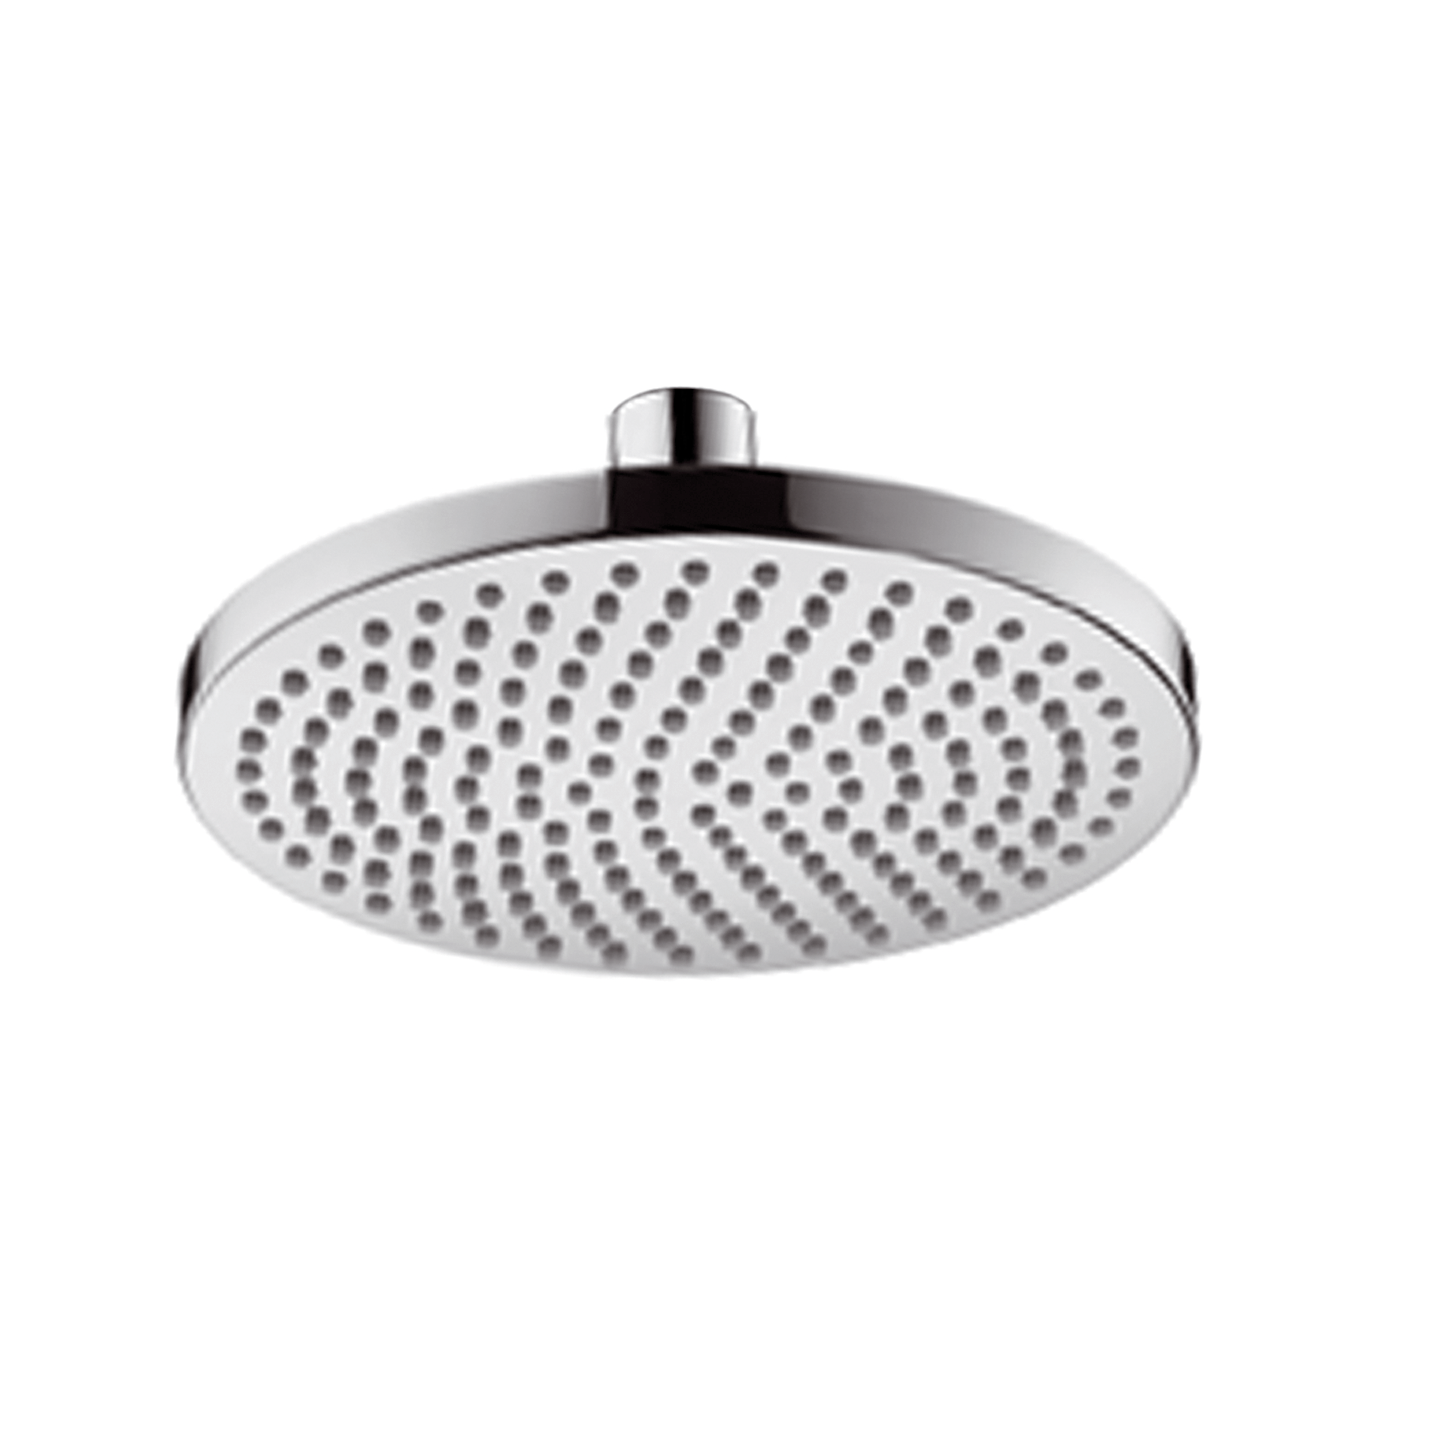 Details About Hansgrohe Dish Shower Head Croma 160 Chrome 27450000